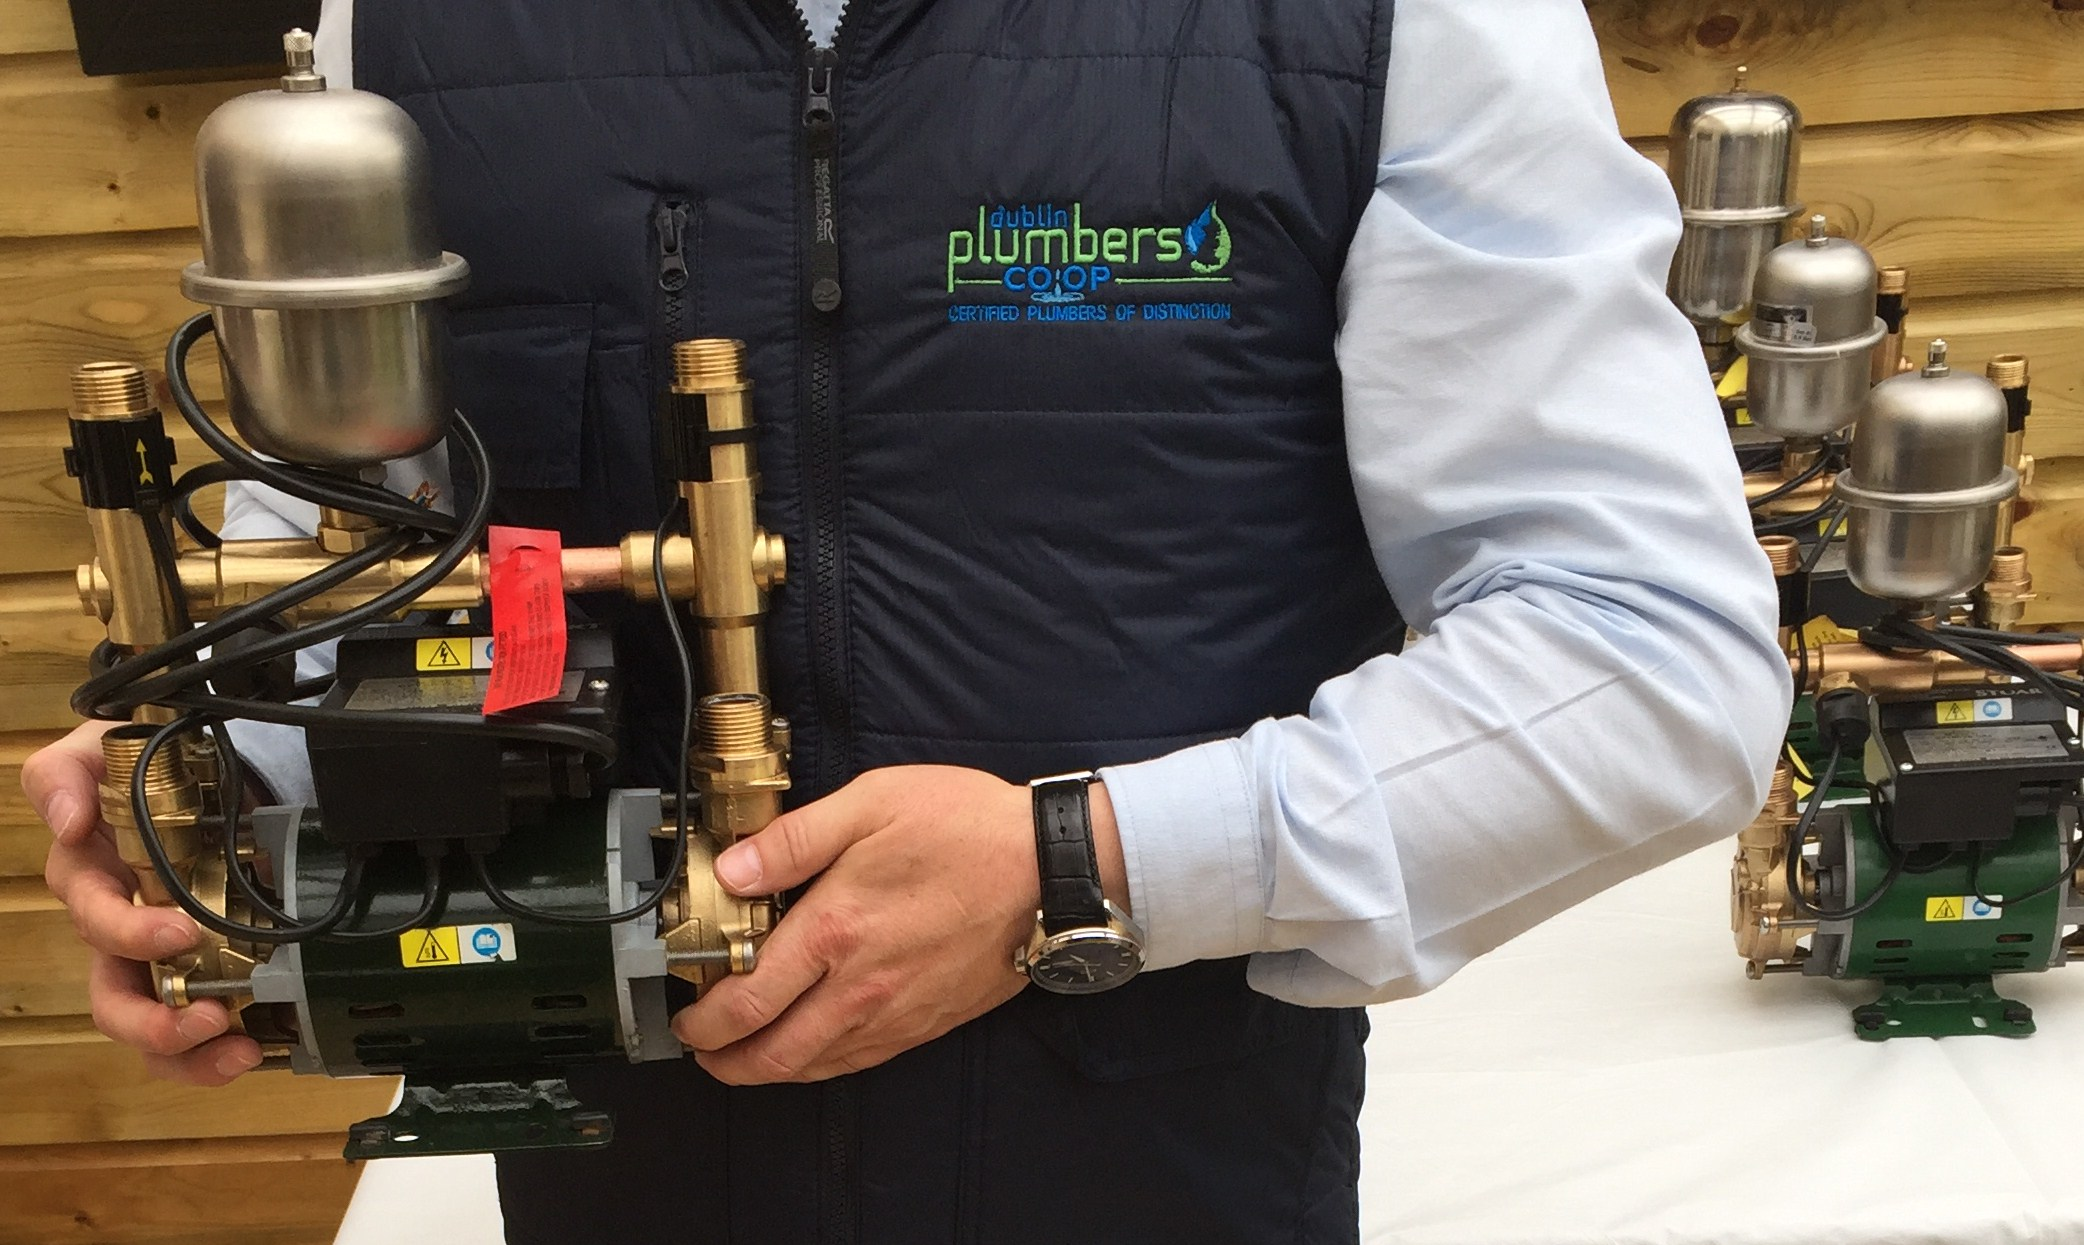 <div class='slider_caption'><h1>Stuart Turner negative & positive head shower pumps.</h1> <a class='slider-readmore' href='https://www.plumber-dublin.ie/stuart-tuner-negative-head-shower-pump-replacement/'> Read More </a></div>